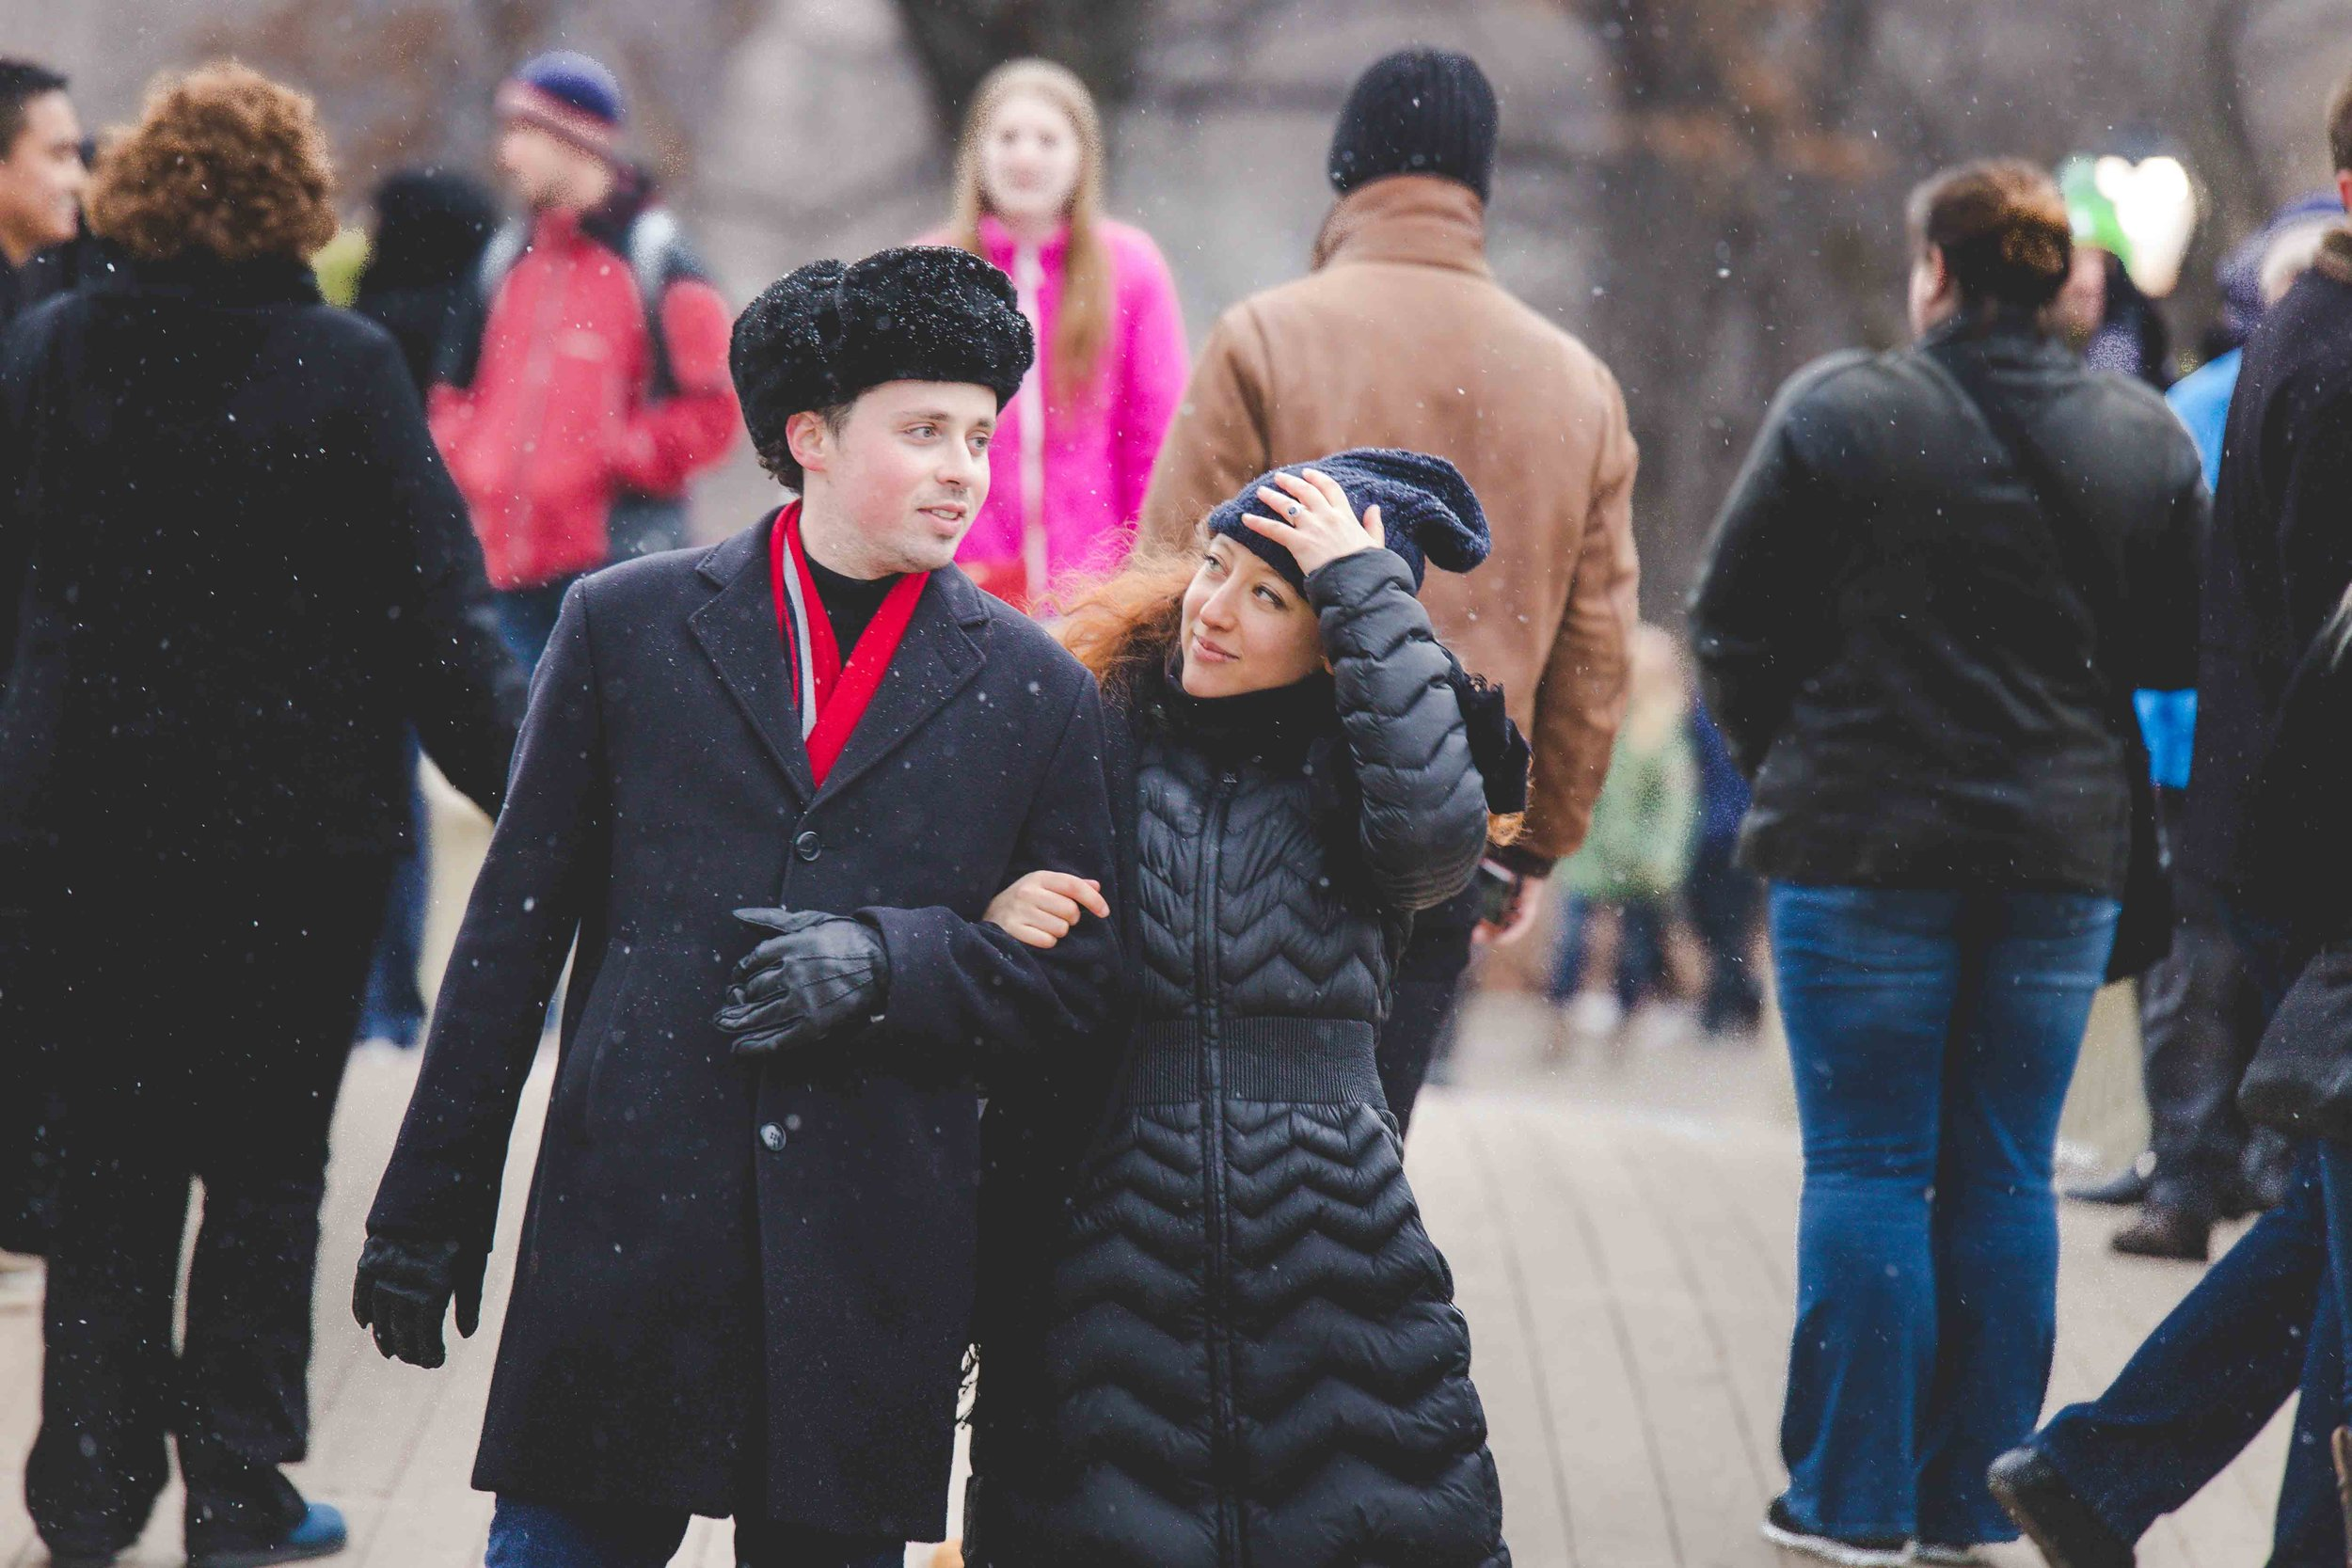 central-park-proposal-engagment-photography-snow-8.jpg